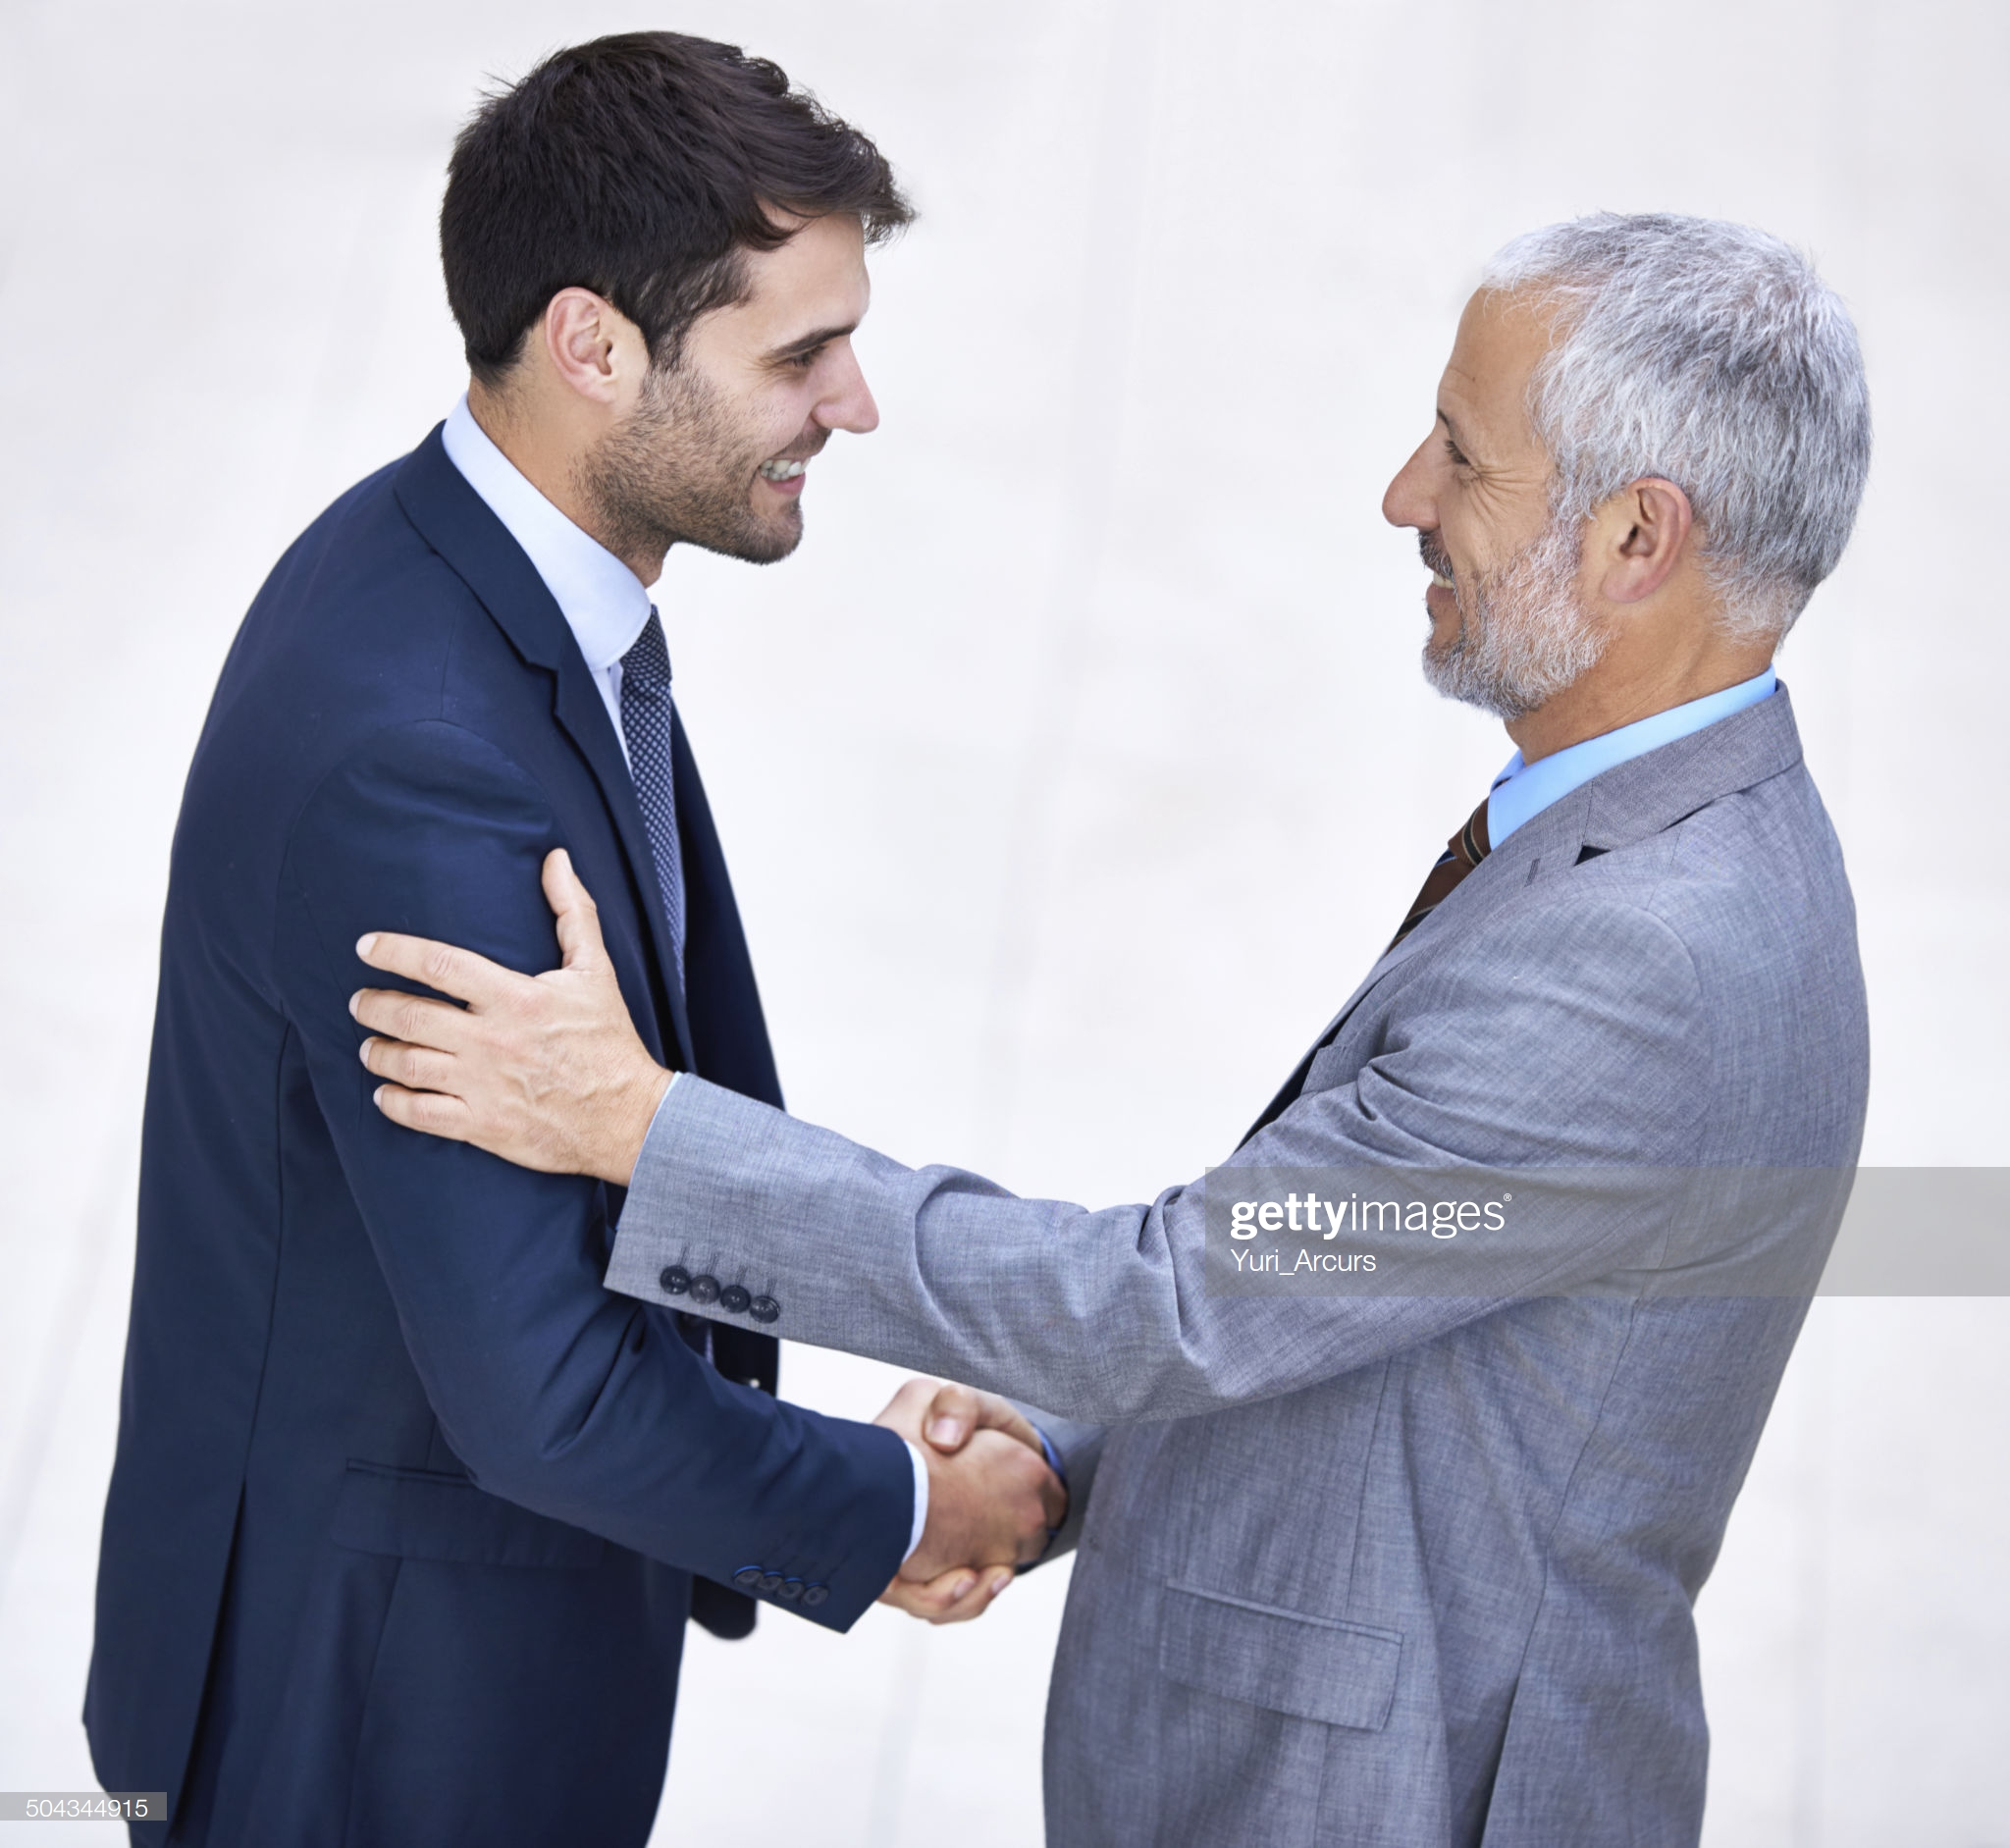 Picture of two person shaking hands